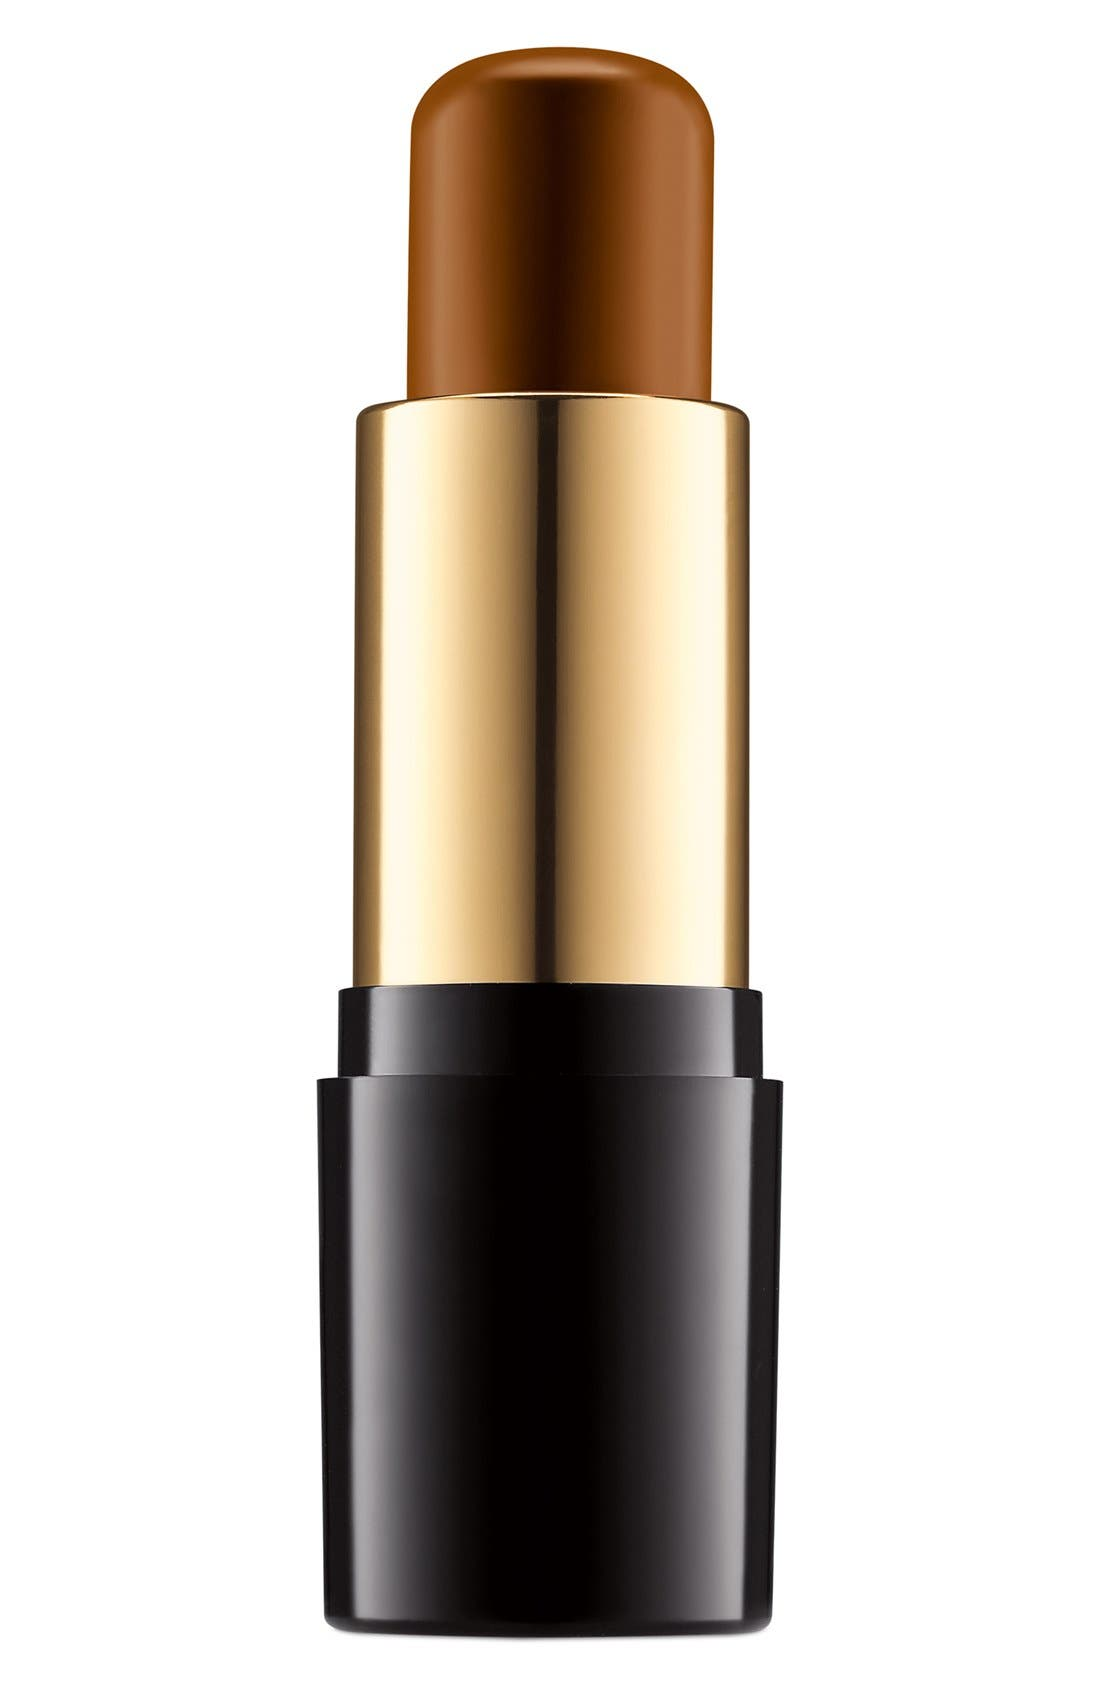 Teint Idole Ultra 24H Foundation Stick Broad Spectrum SPF 21,                             Main thumbnail 1, color,                             550 SUEDE C